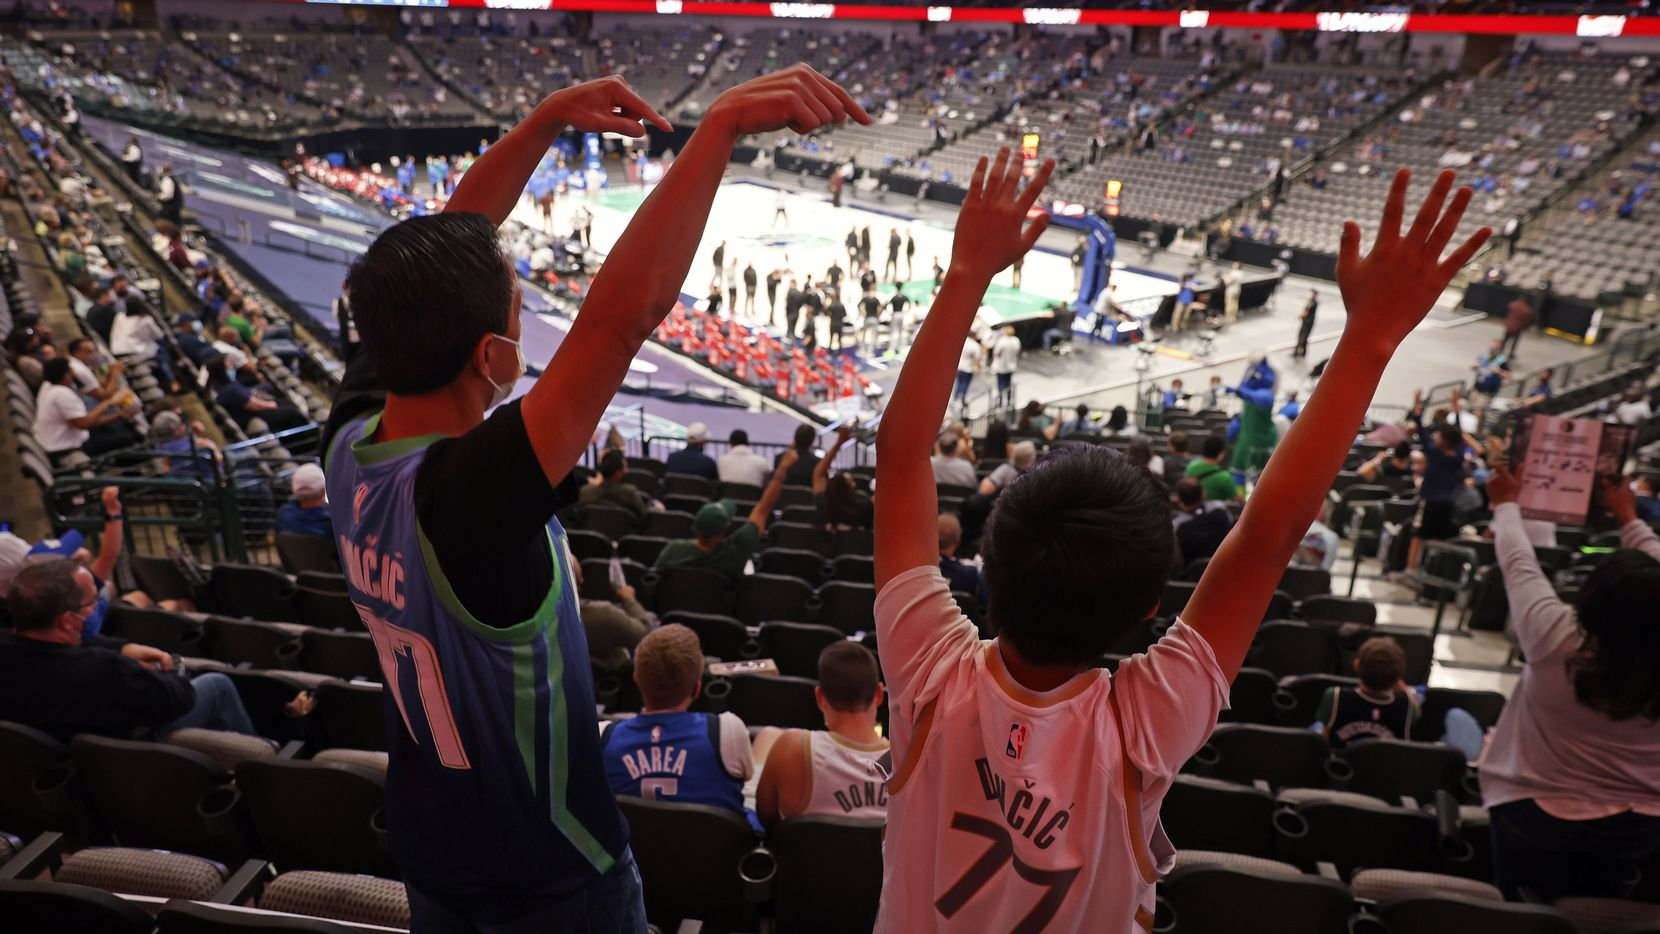 Fans of Dallas Mavericks guard Luka Doncic yell for the tam mascot during a first quarter timeout at the American Airlines Center in Dallas, Thursday, April 8, 2021. The Maverick were playing and defeated the Milwaukee Bucks, 116-101. (Tom Fox/The Dallas Morning News)